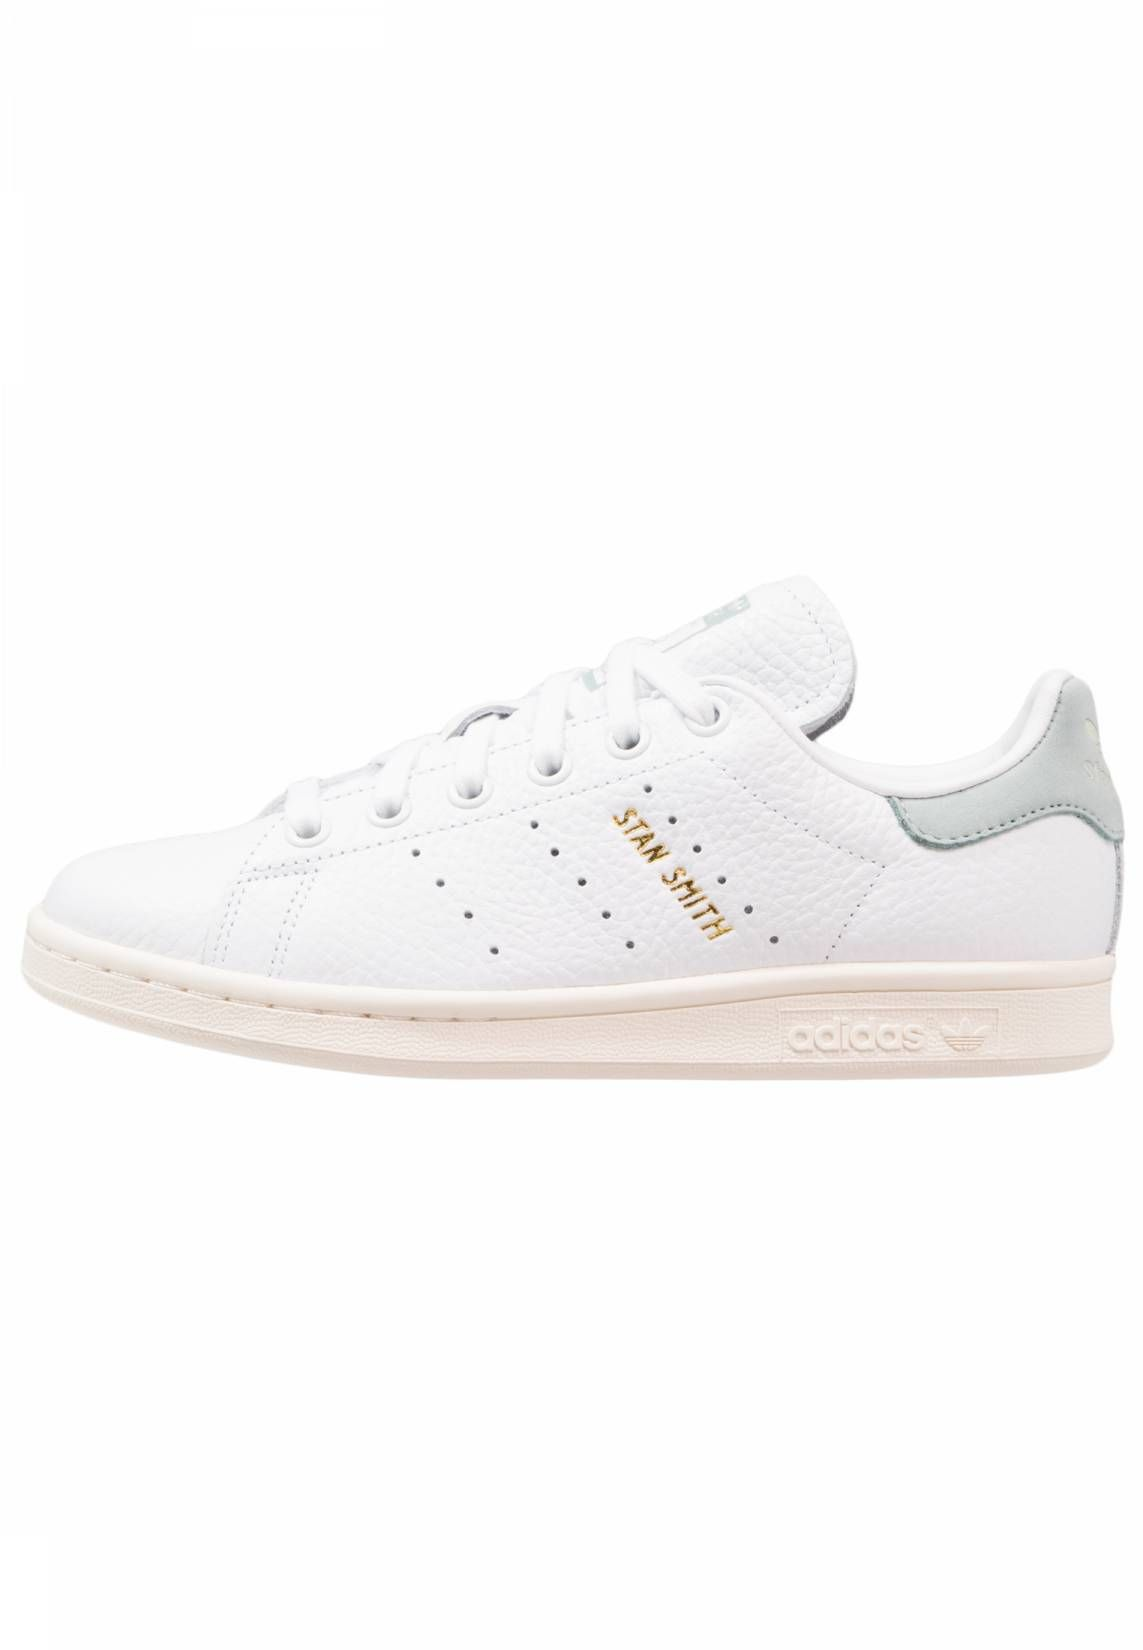 low priced ad53a 68112 adidas Originals. STAN SMITH - Sneakers basse - footwear white tactile green.  Avvertenze